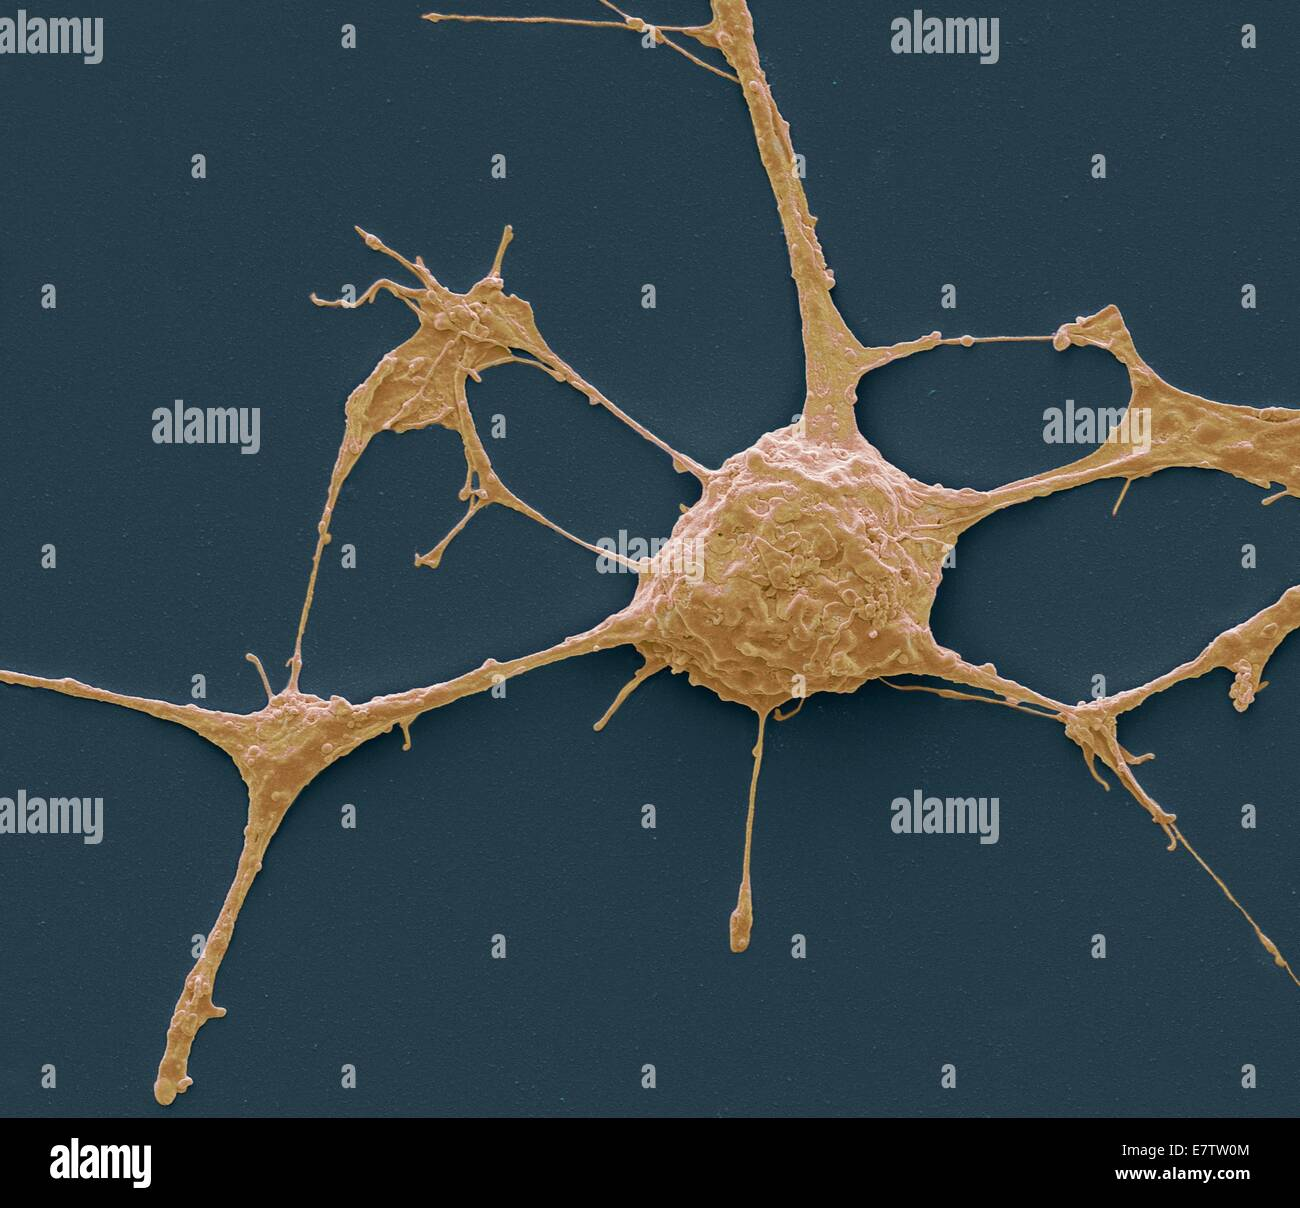 Neurone. Scanning electron micrograph (SEM) of a PC12 neurone in culture.The PC12 cell line, developed from a pheochromocytoma - Stock Image